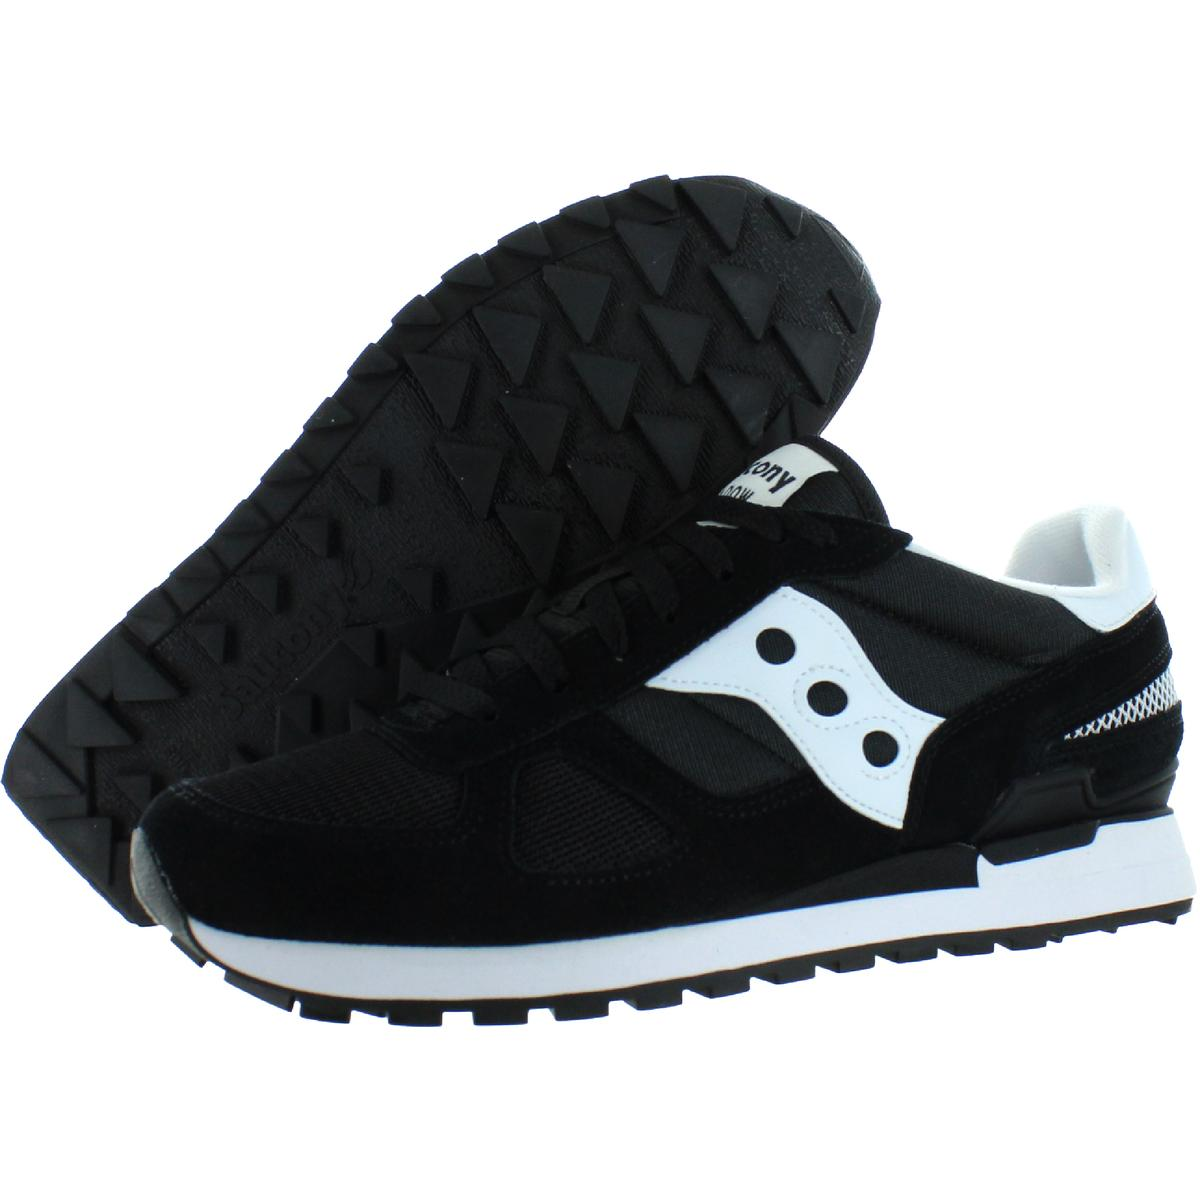 Saucony-Mens-Shadow-Original-Trainers-Suede-Comfort-Sneakers-Shoes-BHFO-0431 miniatuur 6